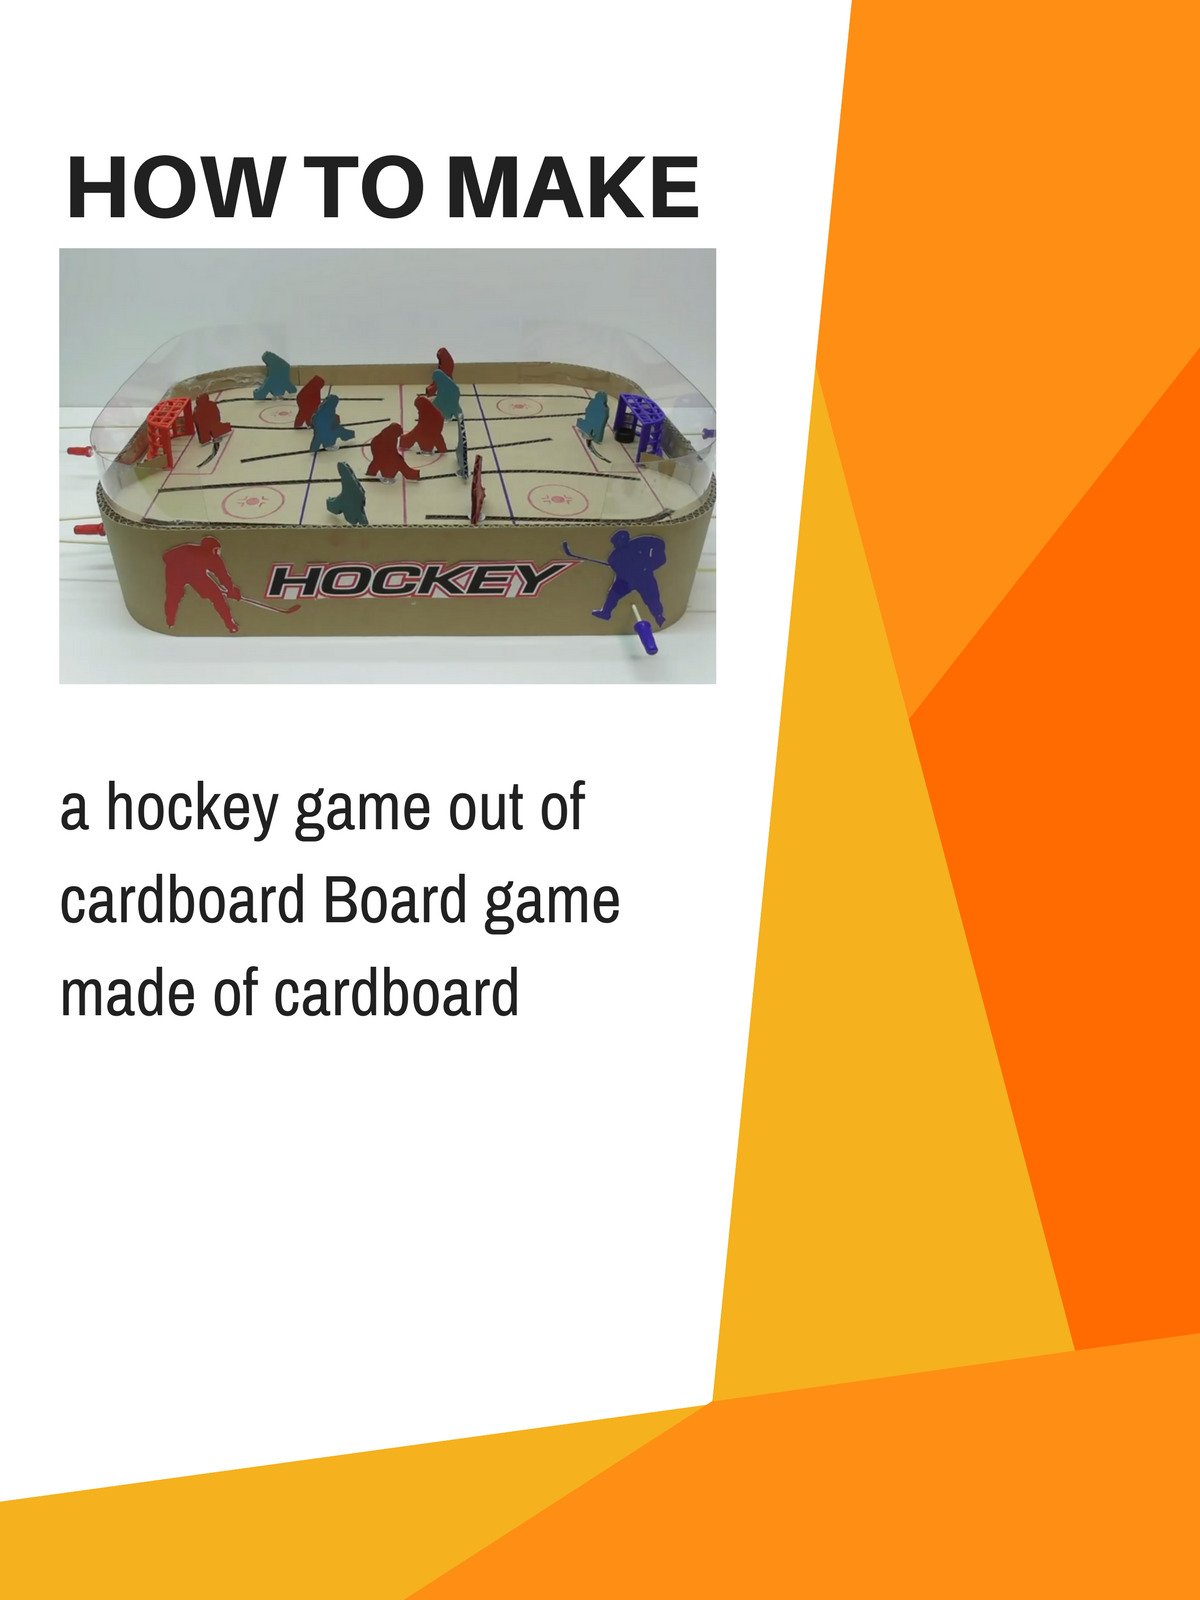 How to make a hockey game out of cardboard Board game made of cardboard